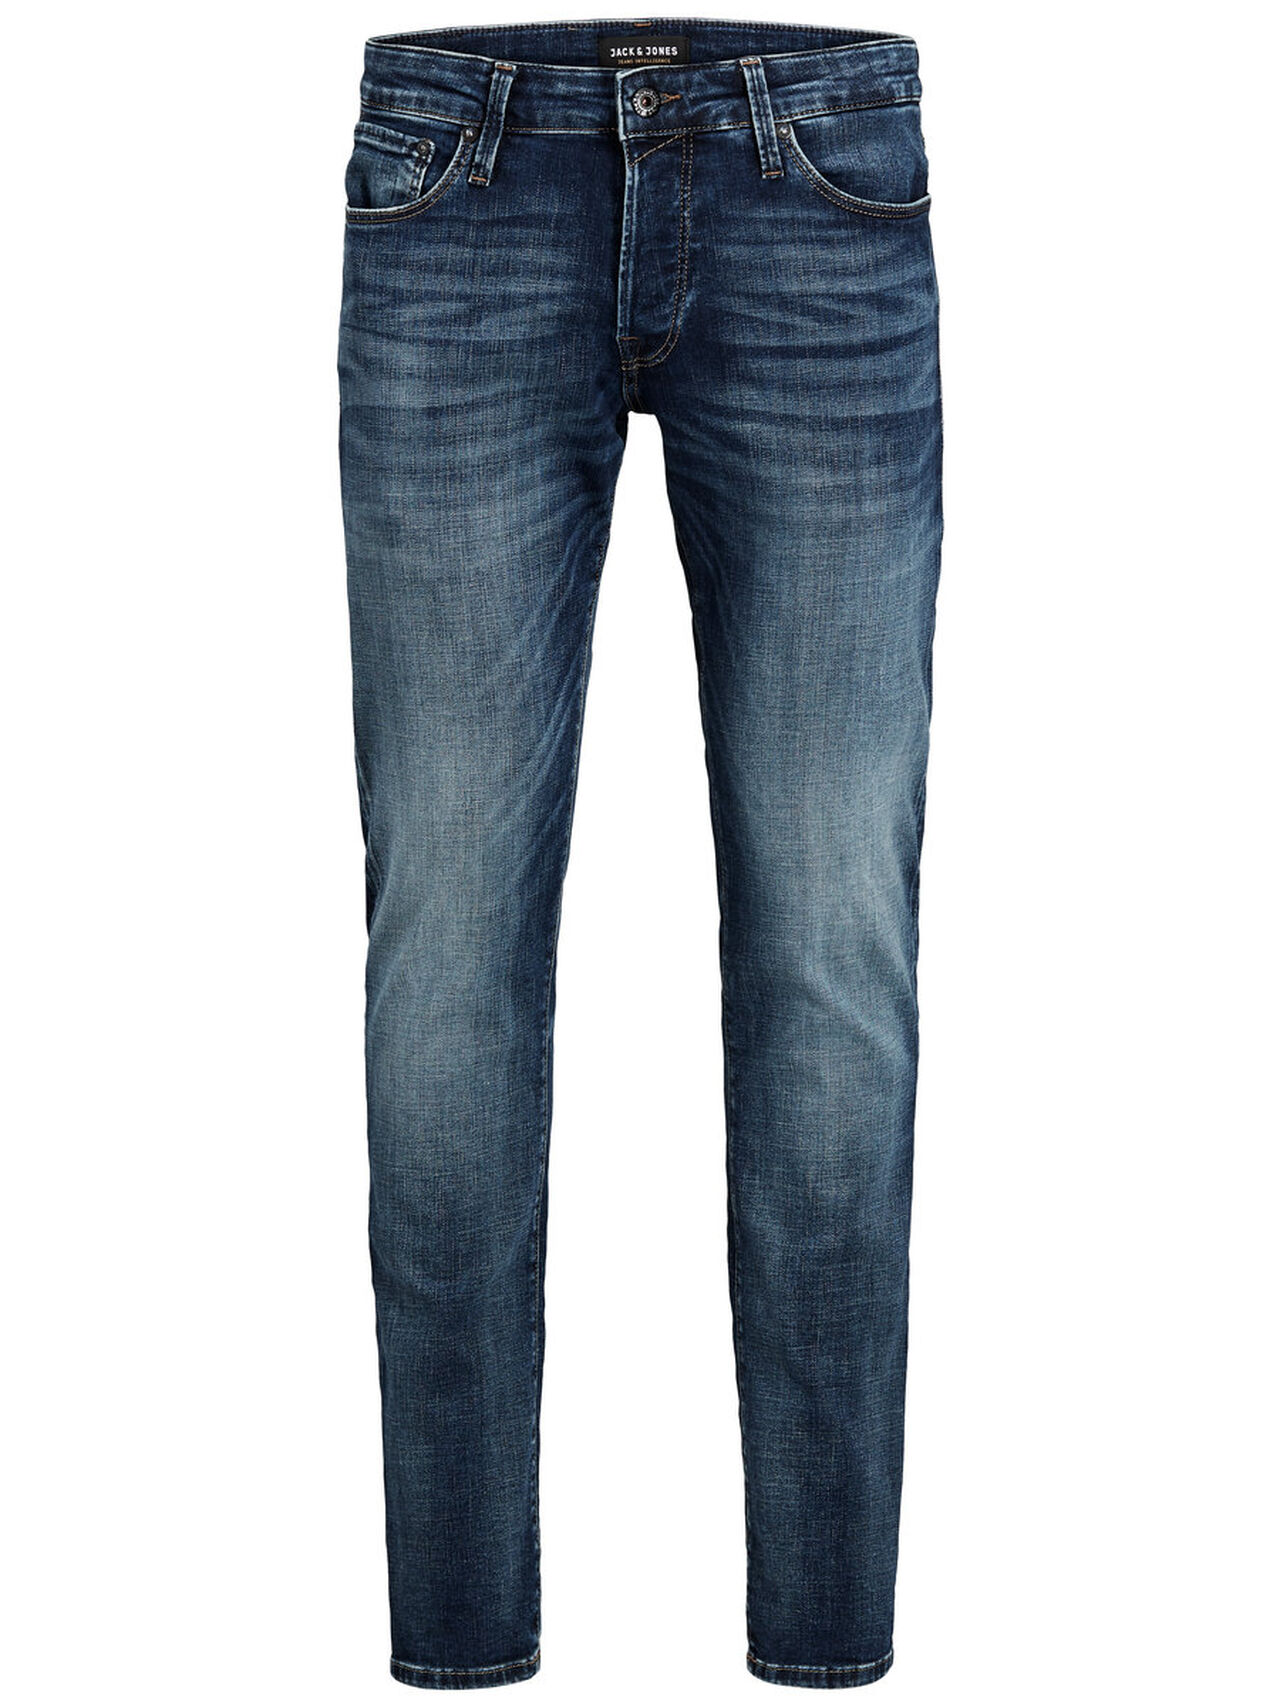 Image of JACK & JONES Glenn Con 057 50sps Slim Fit Jeans Mænd Blå (22017890077)